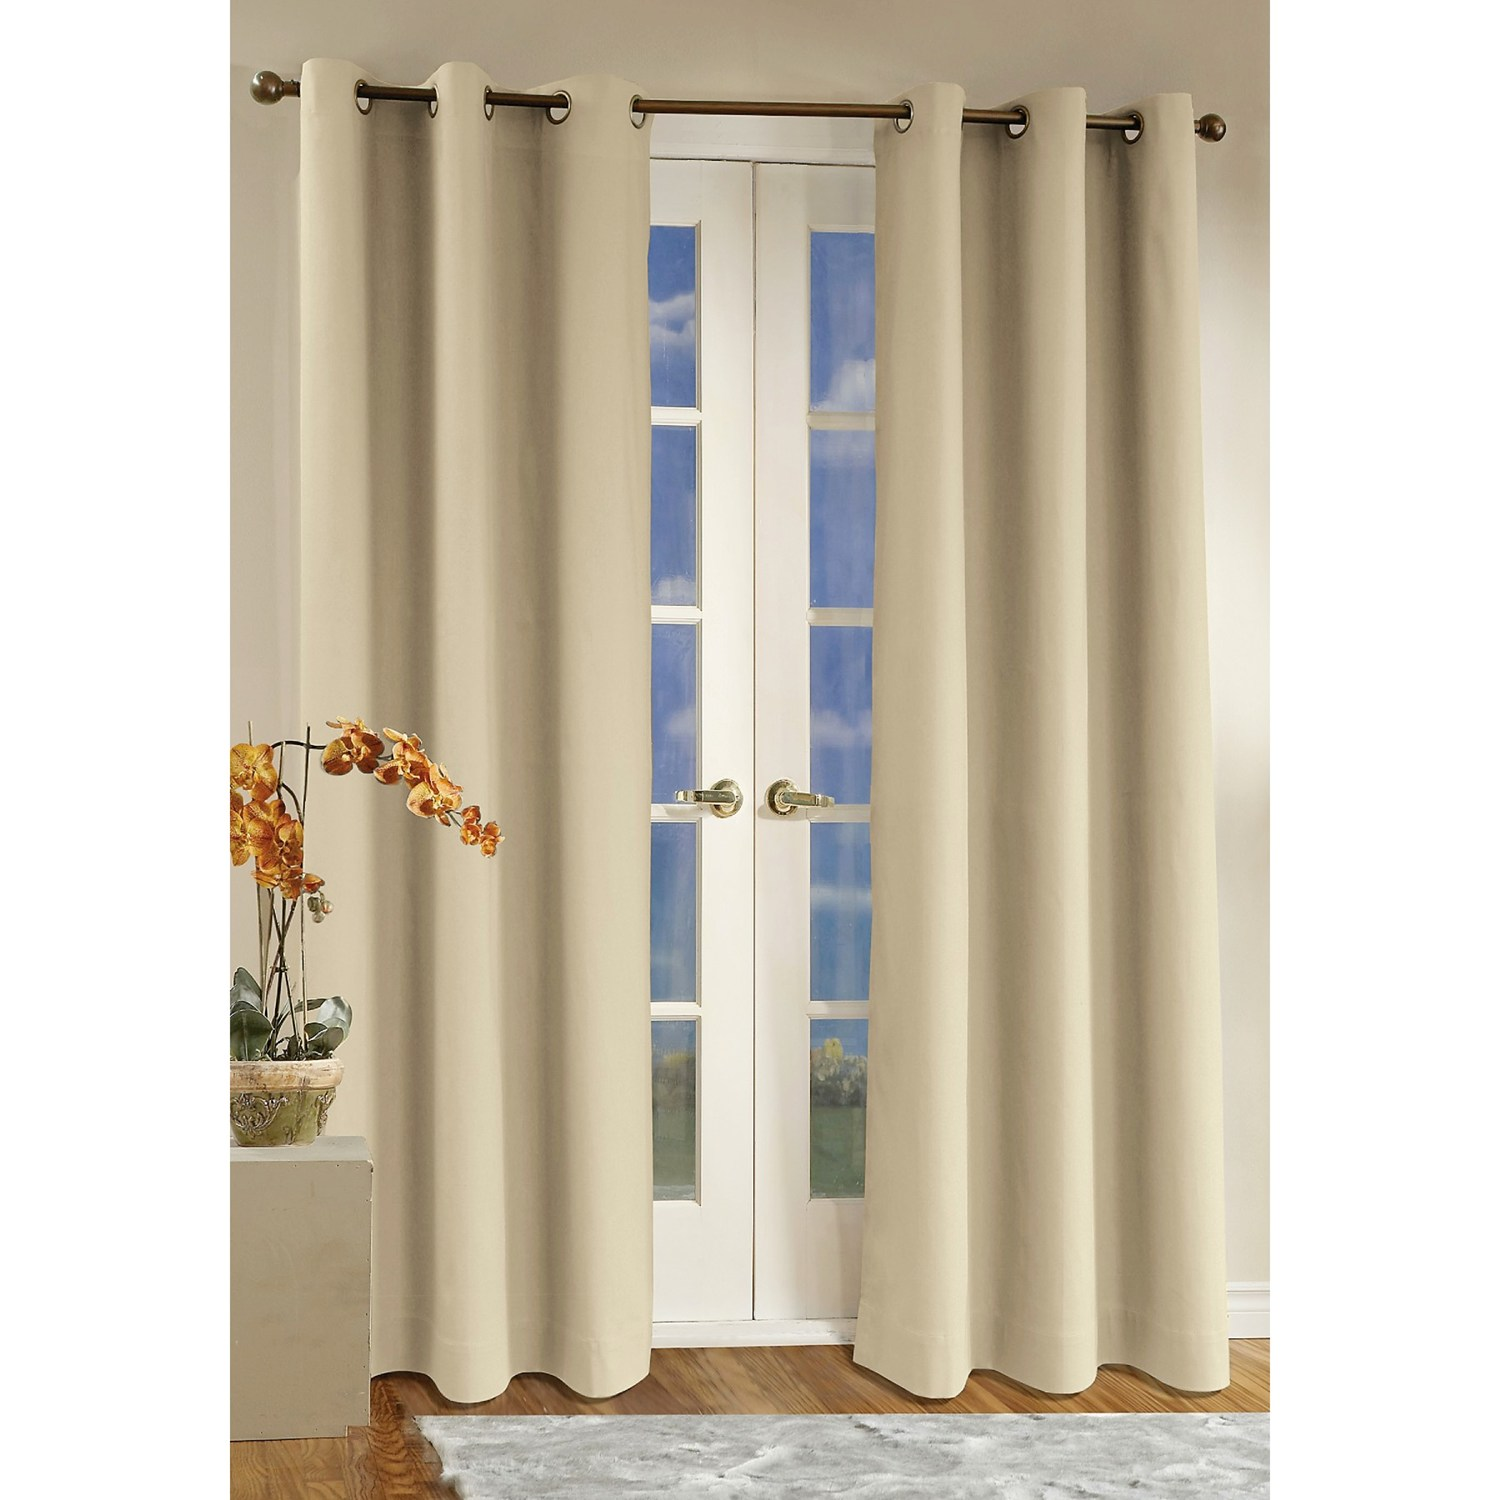 : Insulated Patio Door Curtains